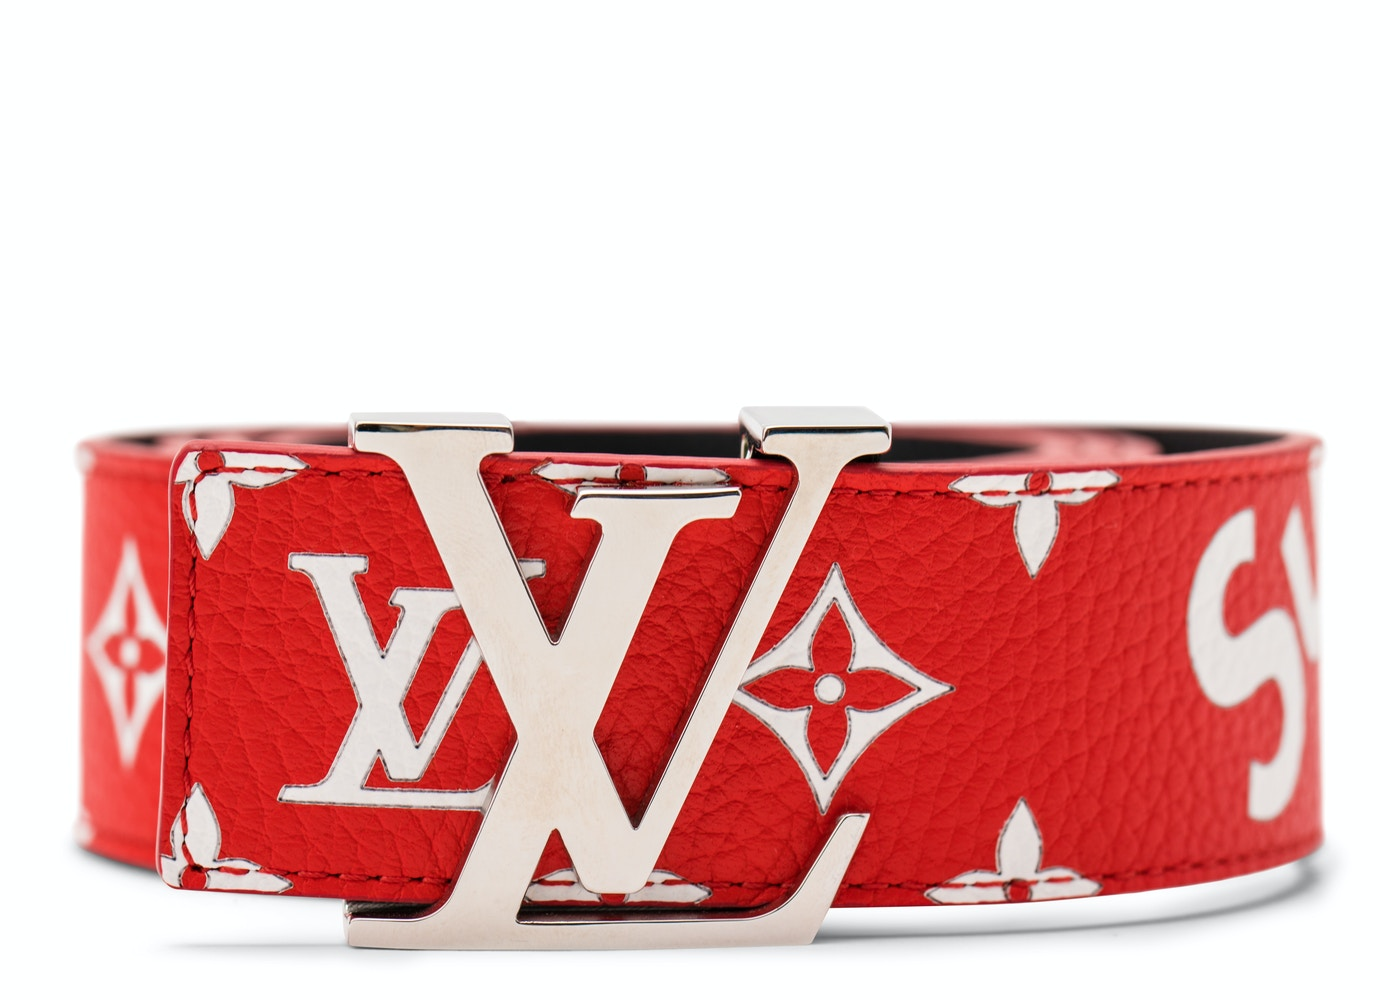 4a4a7046d068 Louis Vuitton x Supreme Initiales Belt 40 MM Monogram Red. 40 MM Monogram  Red